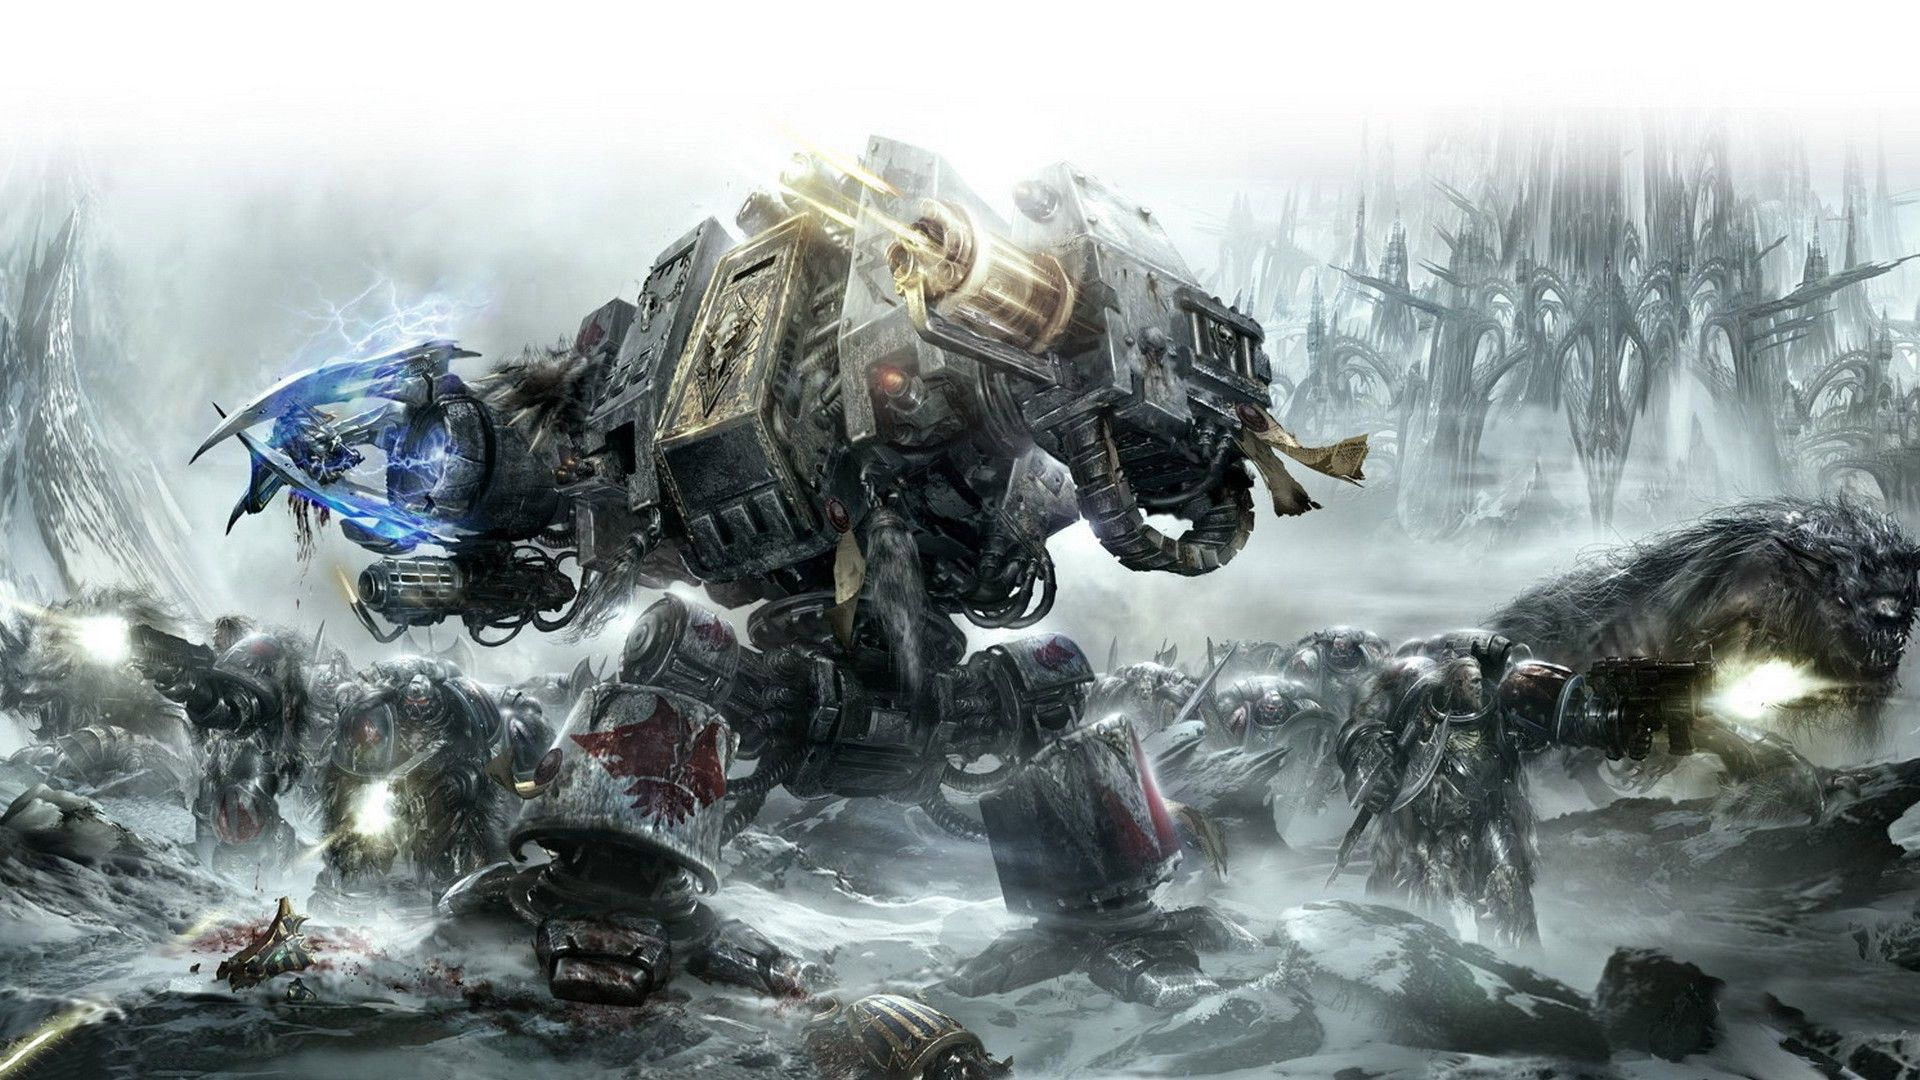 Free Download Warhammer 40k Wallpapers 1920x1080 For Your